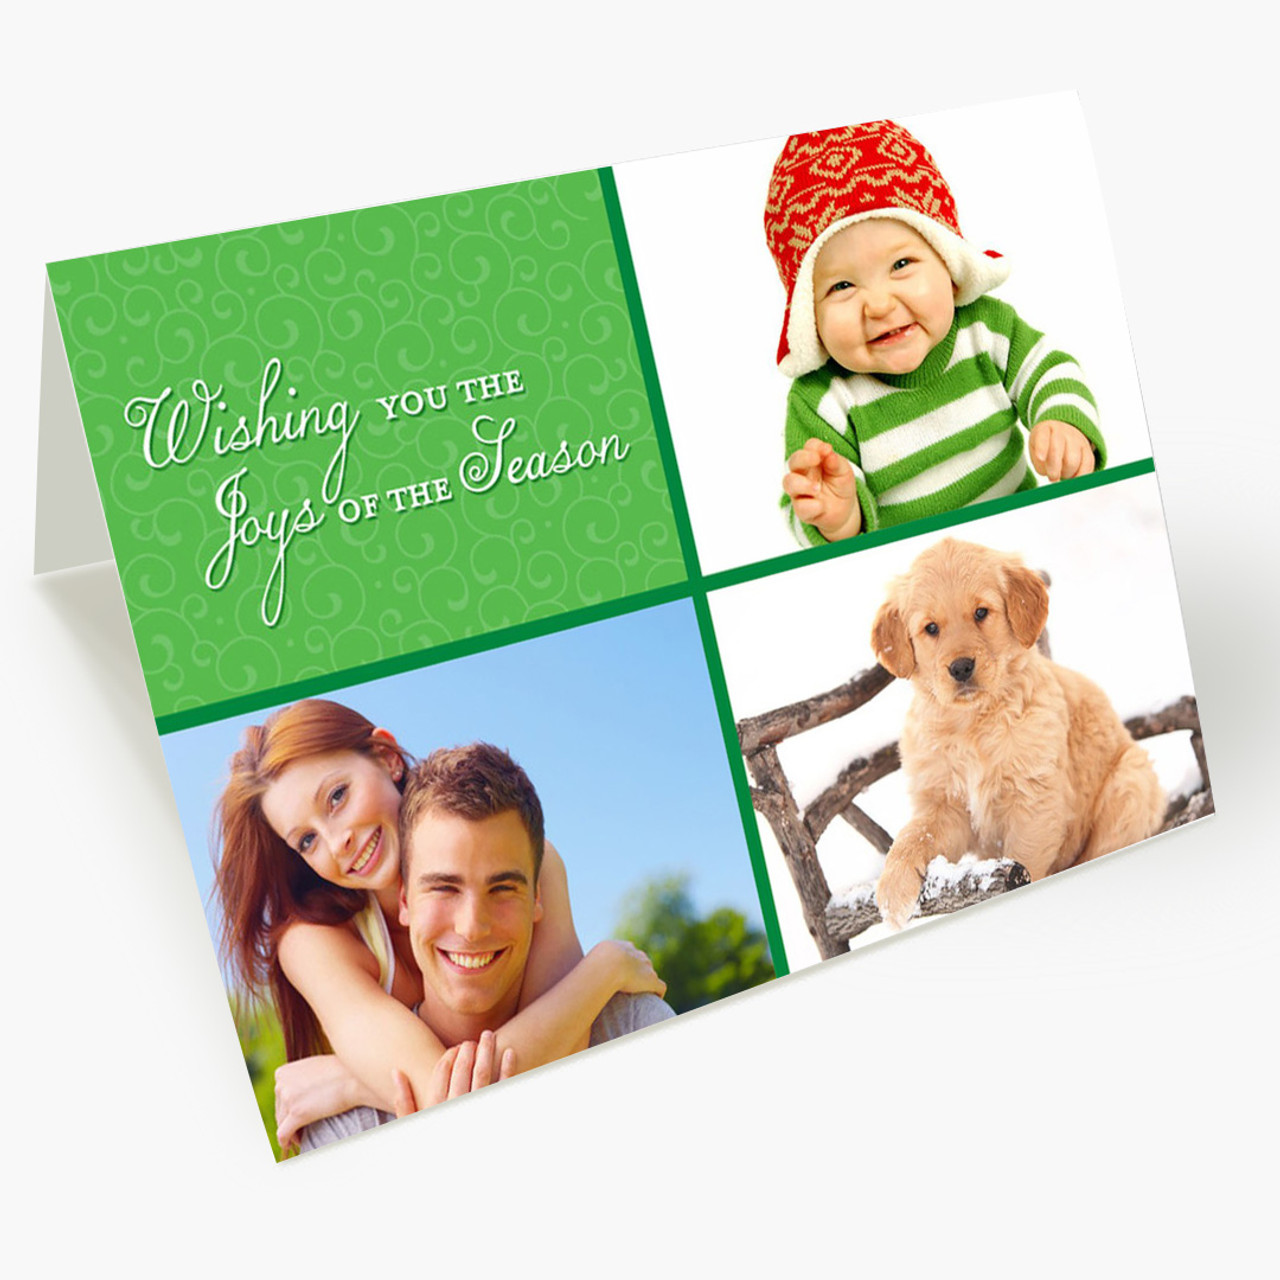 Season of Joy Photo - Matte Finish Christmas Card